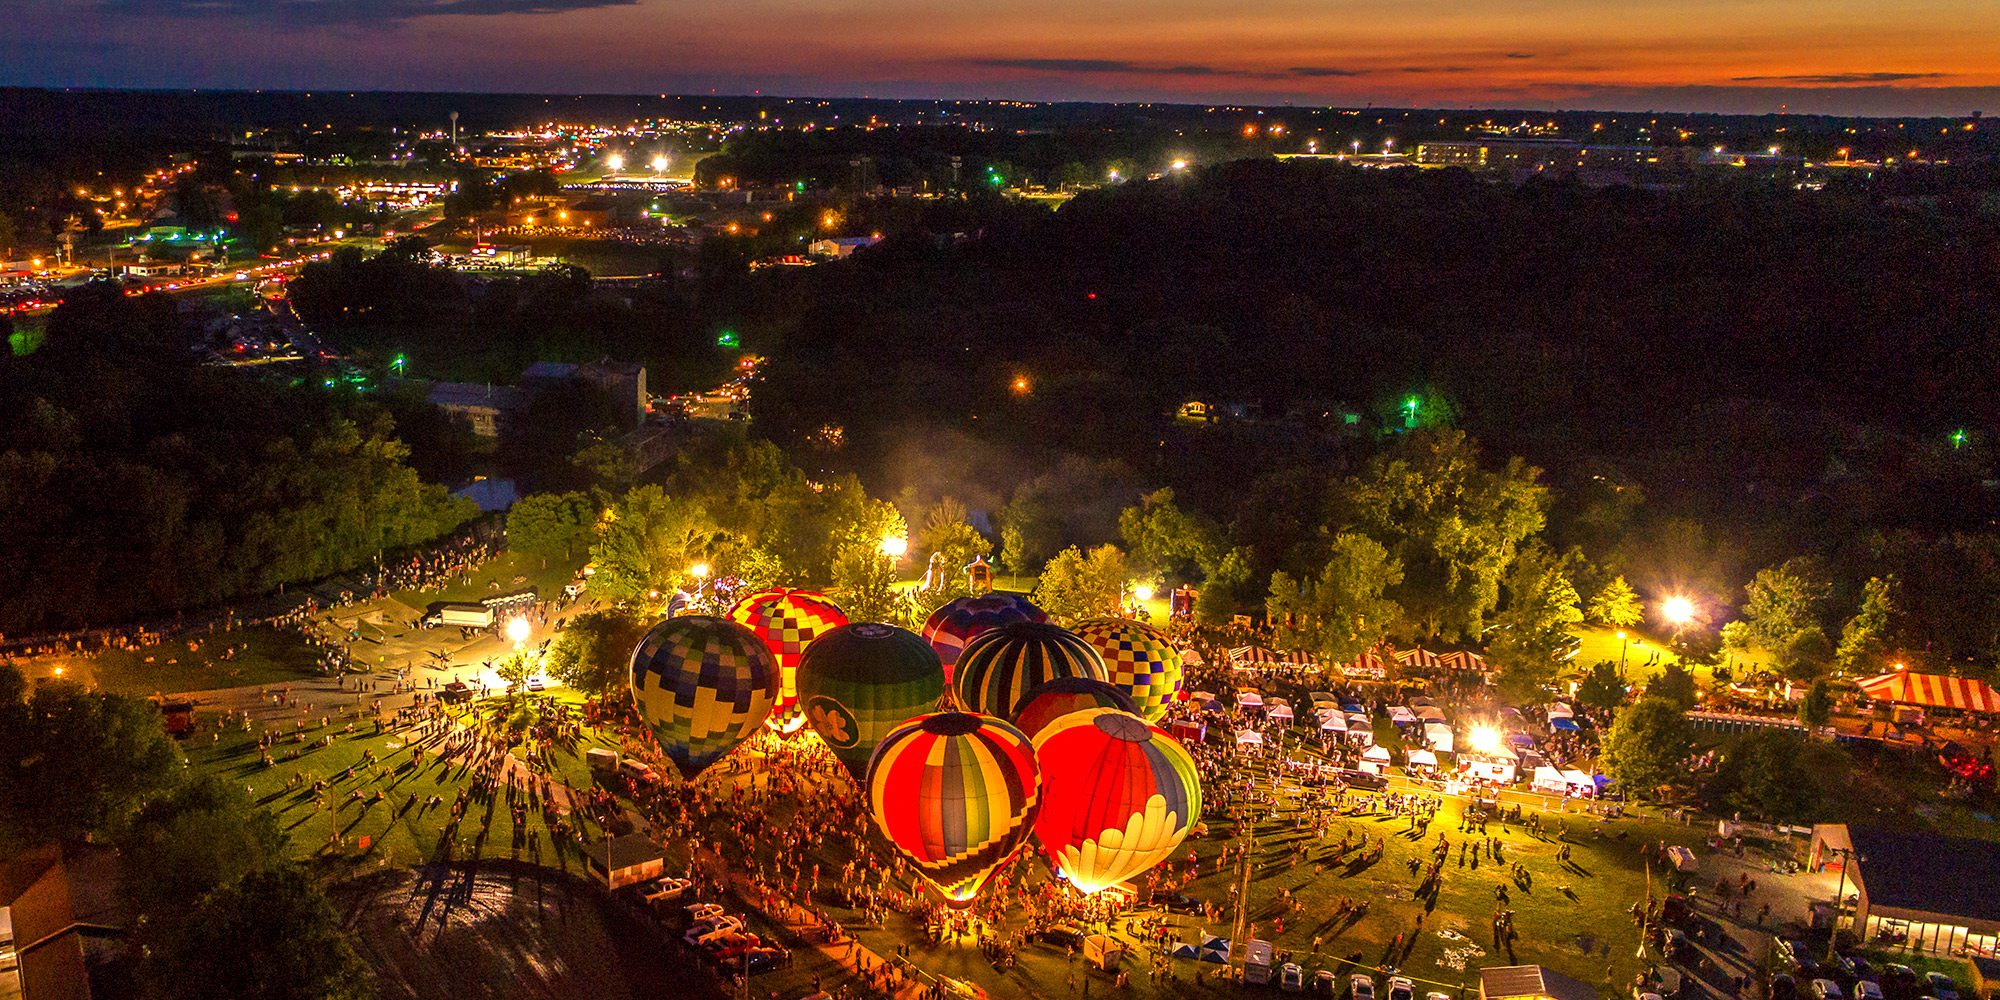 Hot Air Balloon Glow in Ozark Missouri